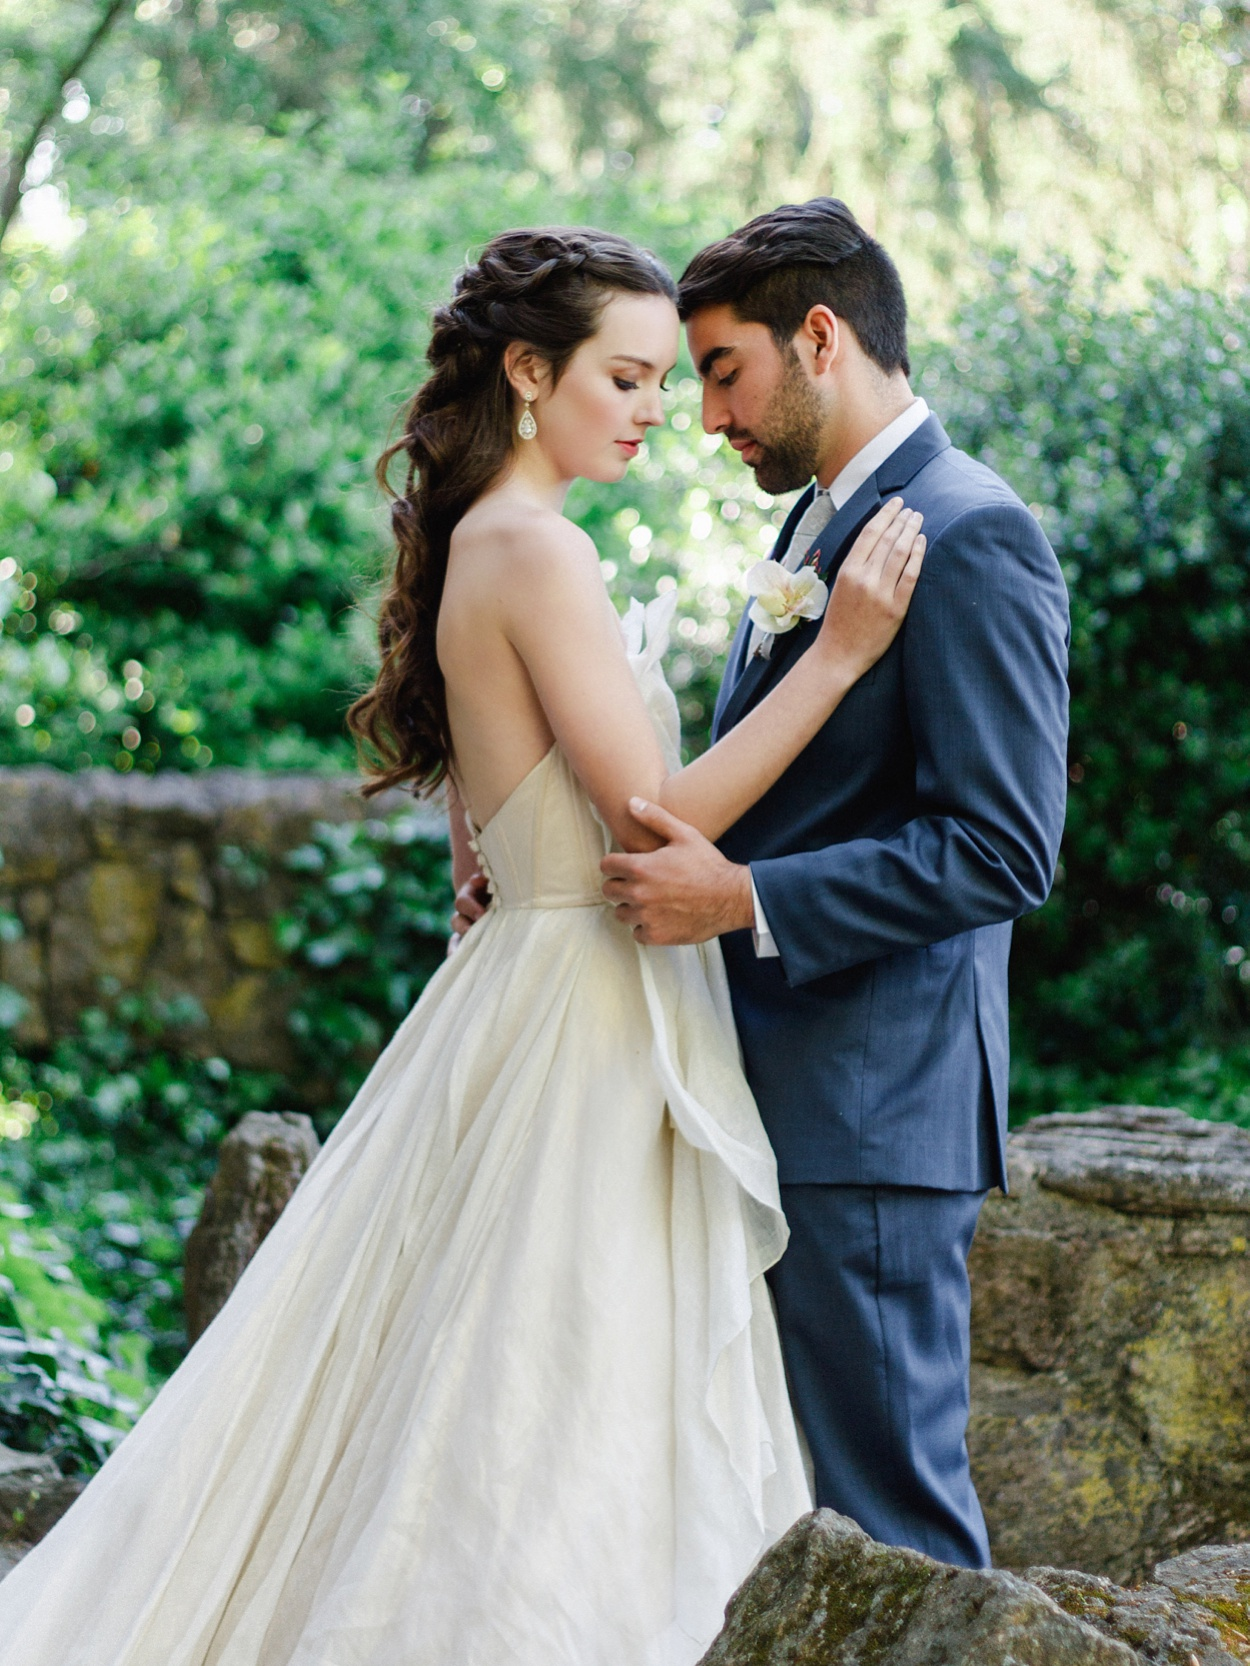 Napa Valley Wedding | Justina Bilodeau | Joy Wed blog | http://www.joy-wed.com